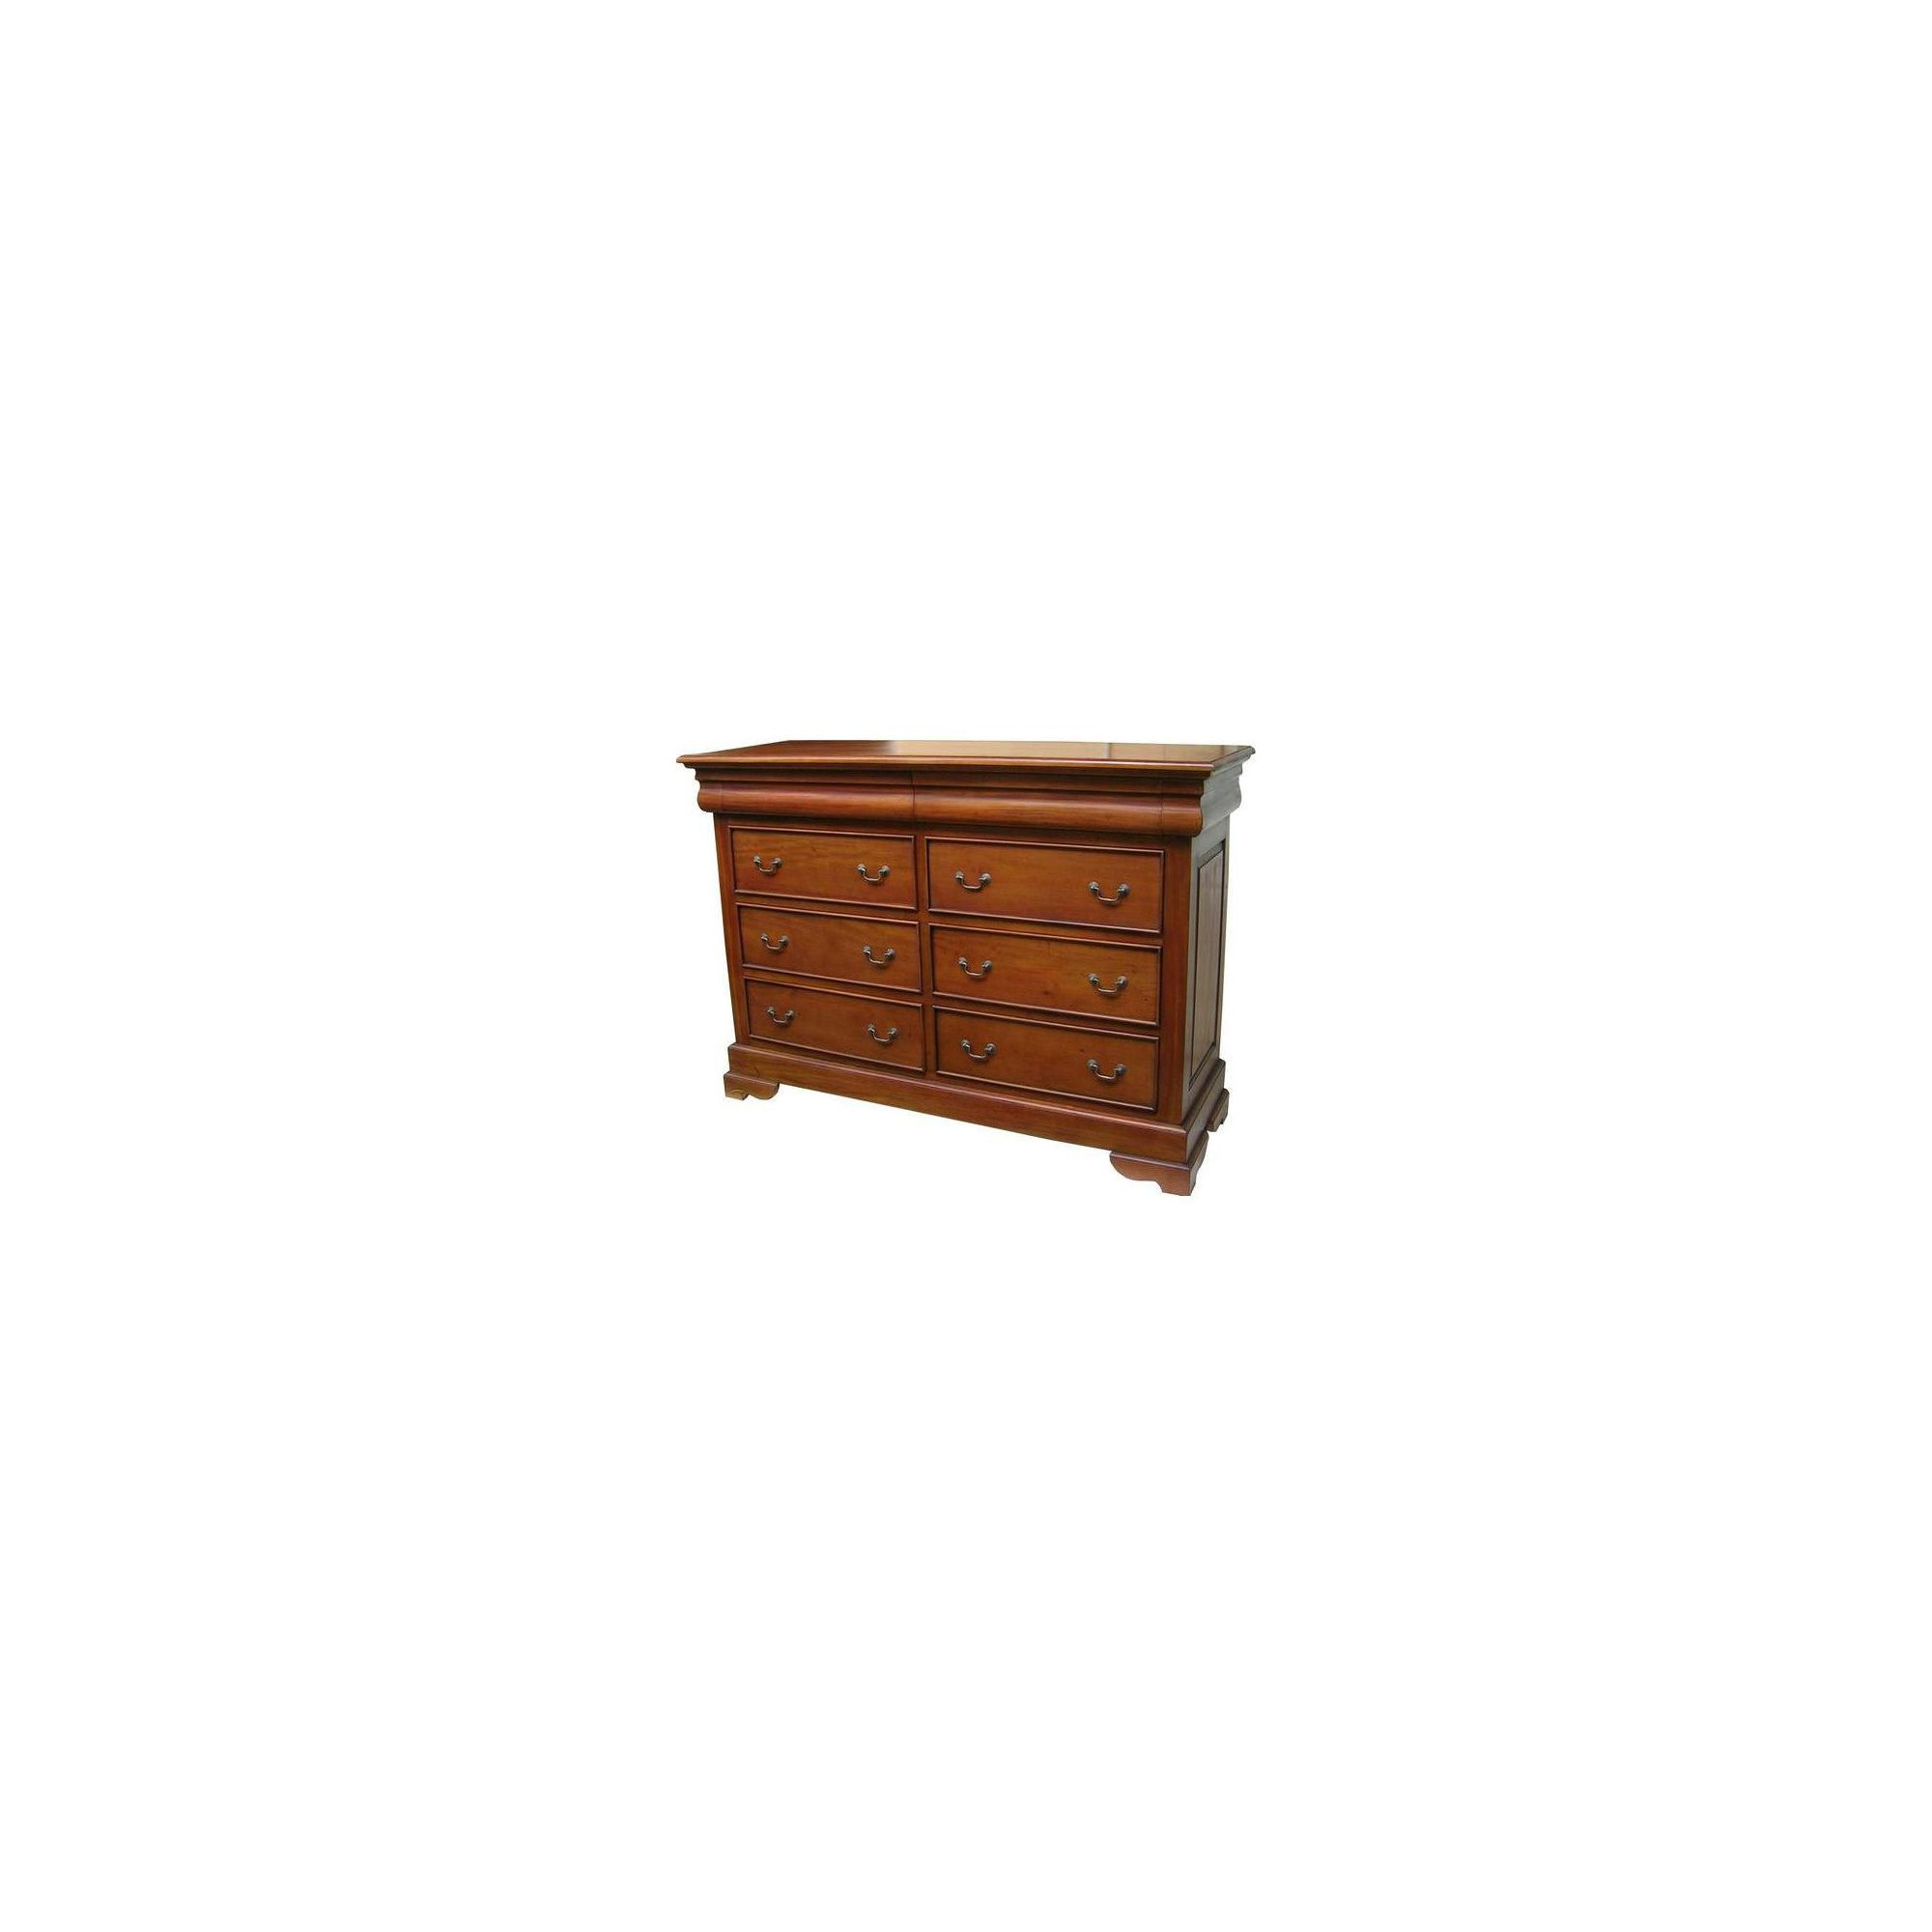 Lock stock and barrel Mahogany 8 Drawer Sleigh Chest in Mahogany - Antique White at Tesco Direct